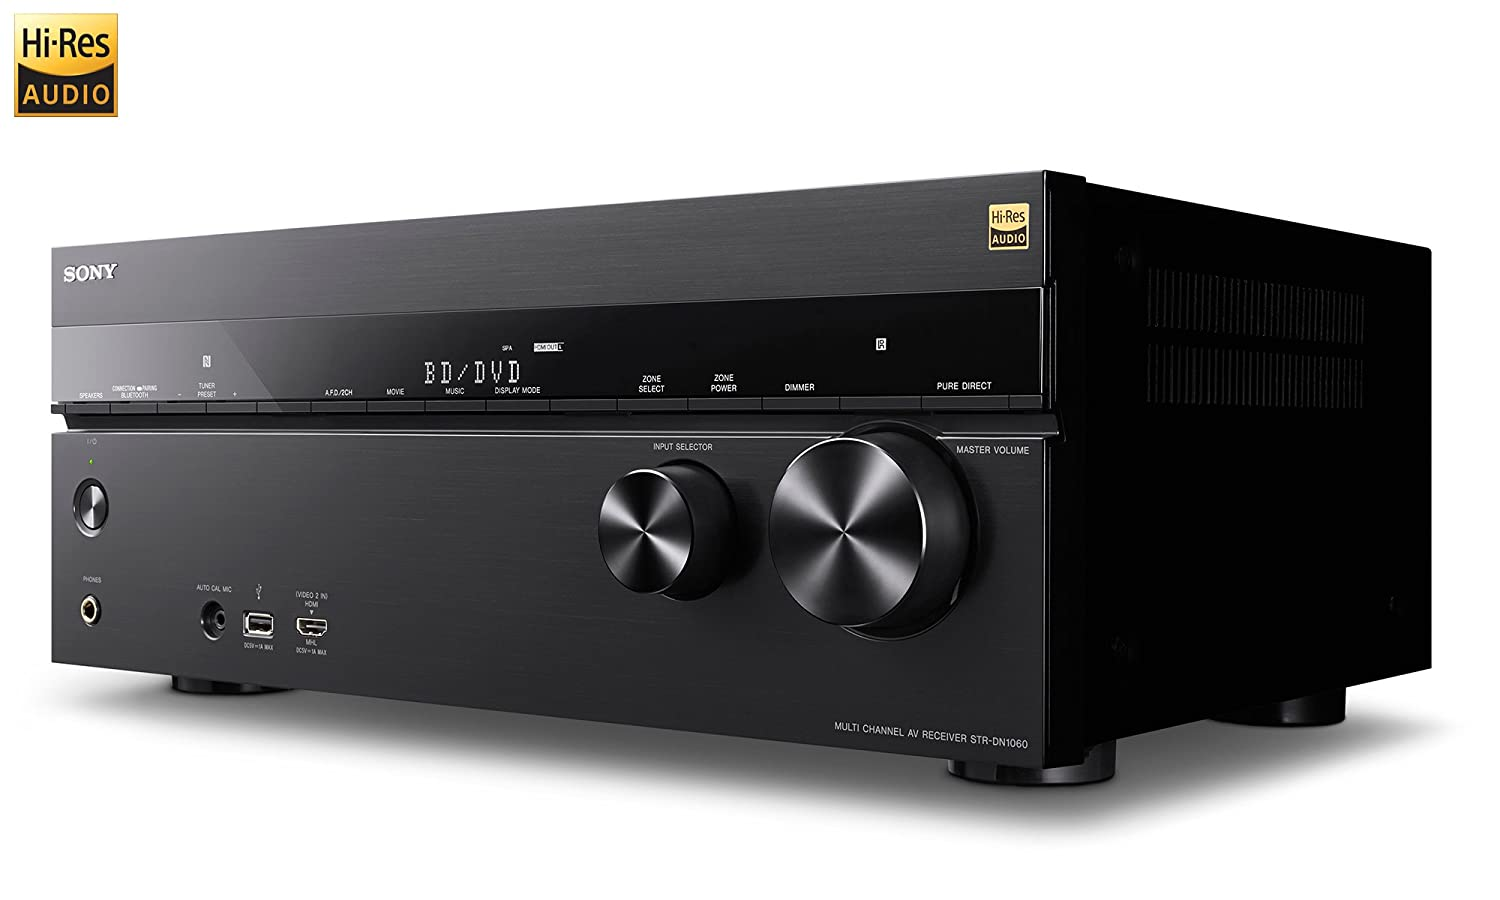 71gKRAUSuyL._SL1500_ sony strdn1060 7 2 channel hi res wifi network av receiver (black Sony STR DH550 Manual Owners at sewacar.co